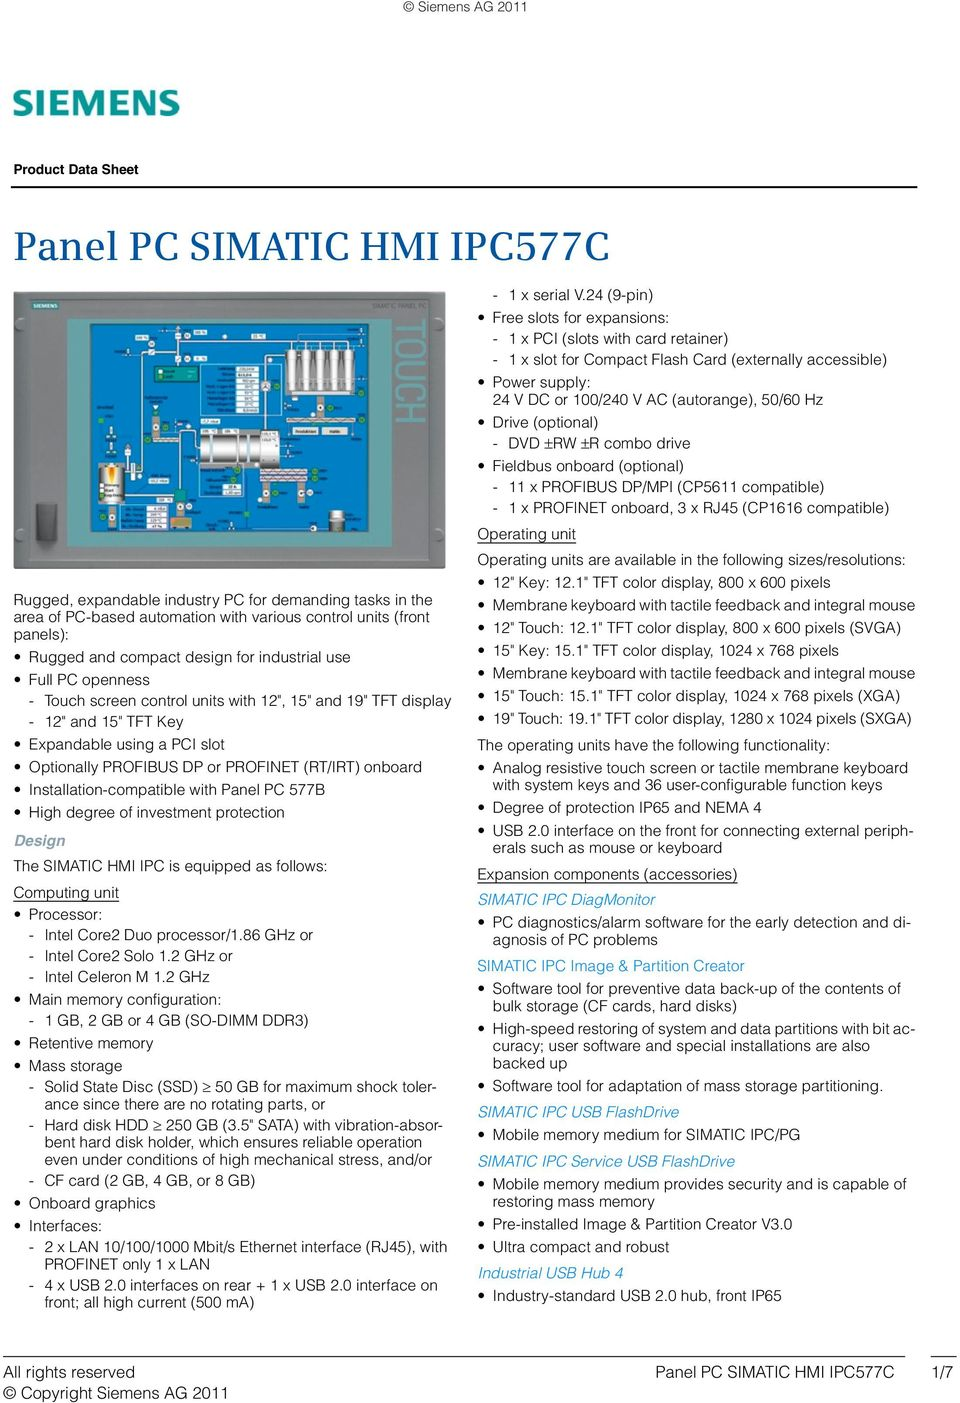 Installation-compatible with Panel PC 577B High degree of investment protection Design The SIMATIC HMI IPC is equipped as follows: Computing unit Processor: - Intel Core2 Duo processor/1.